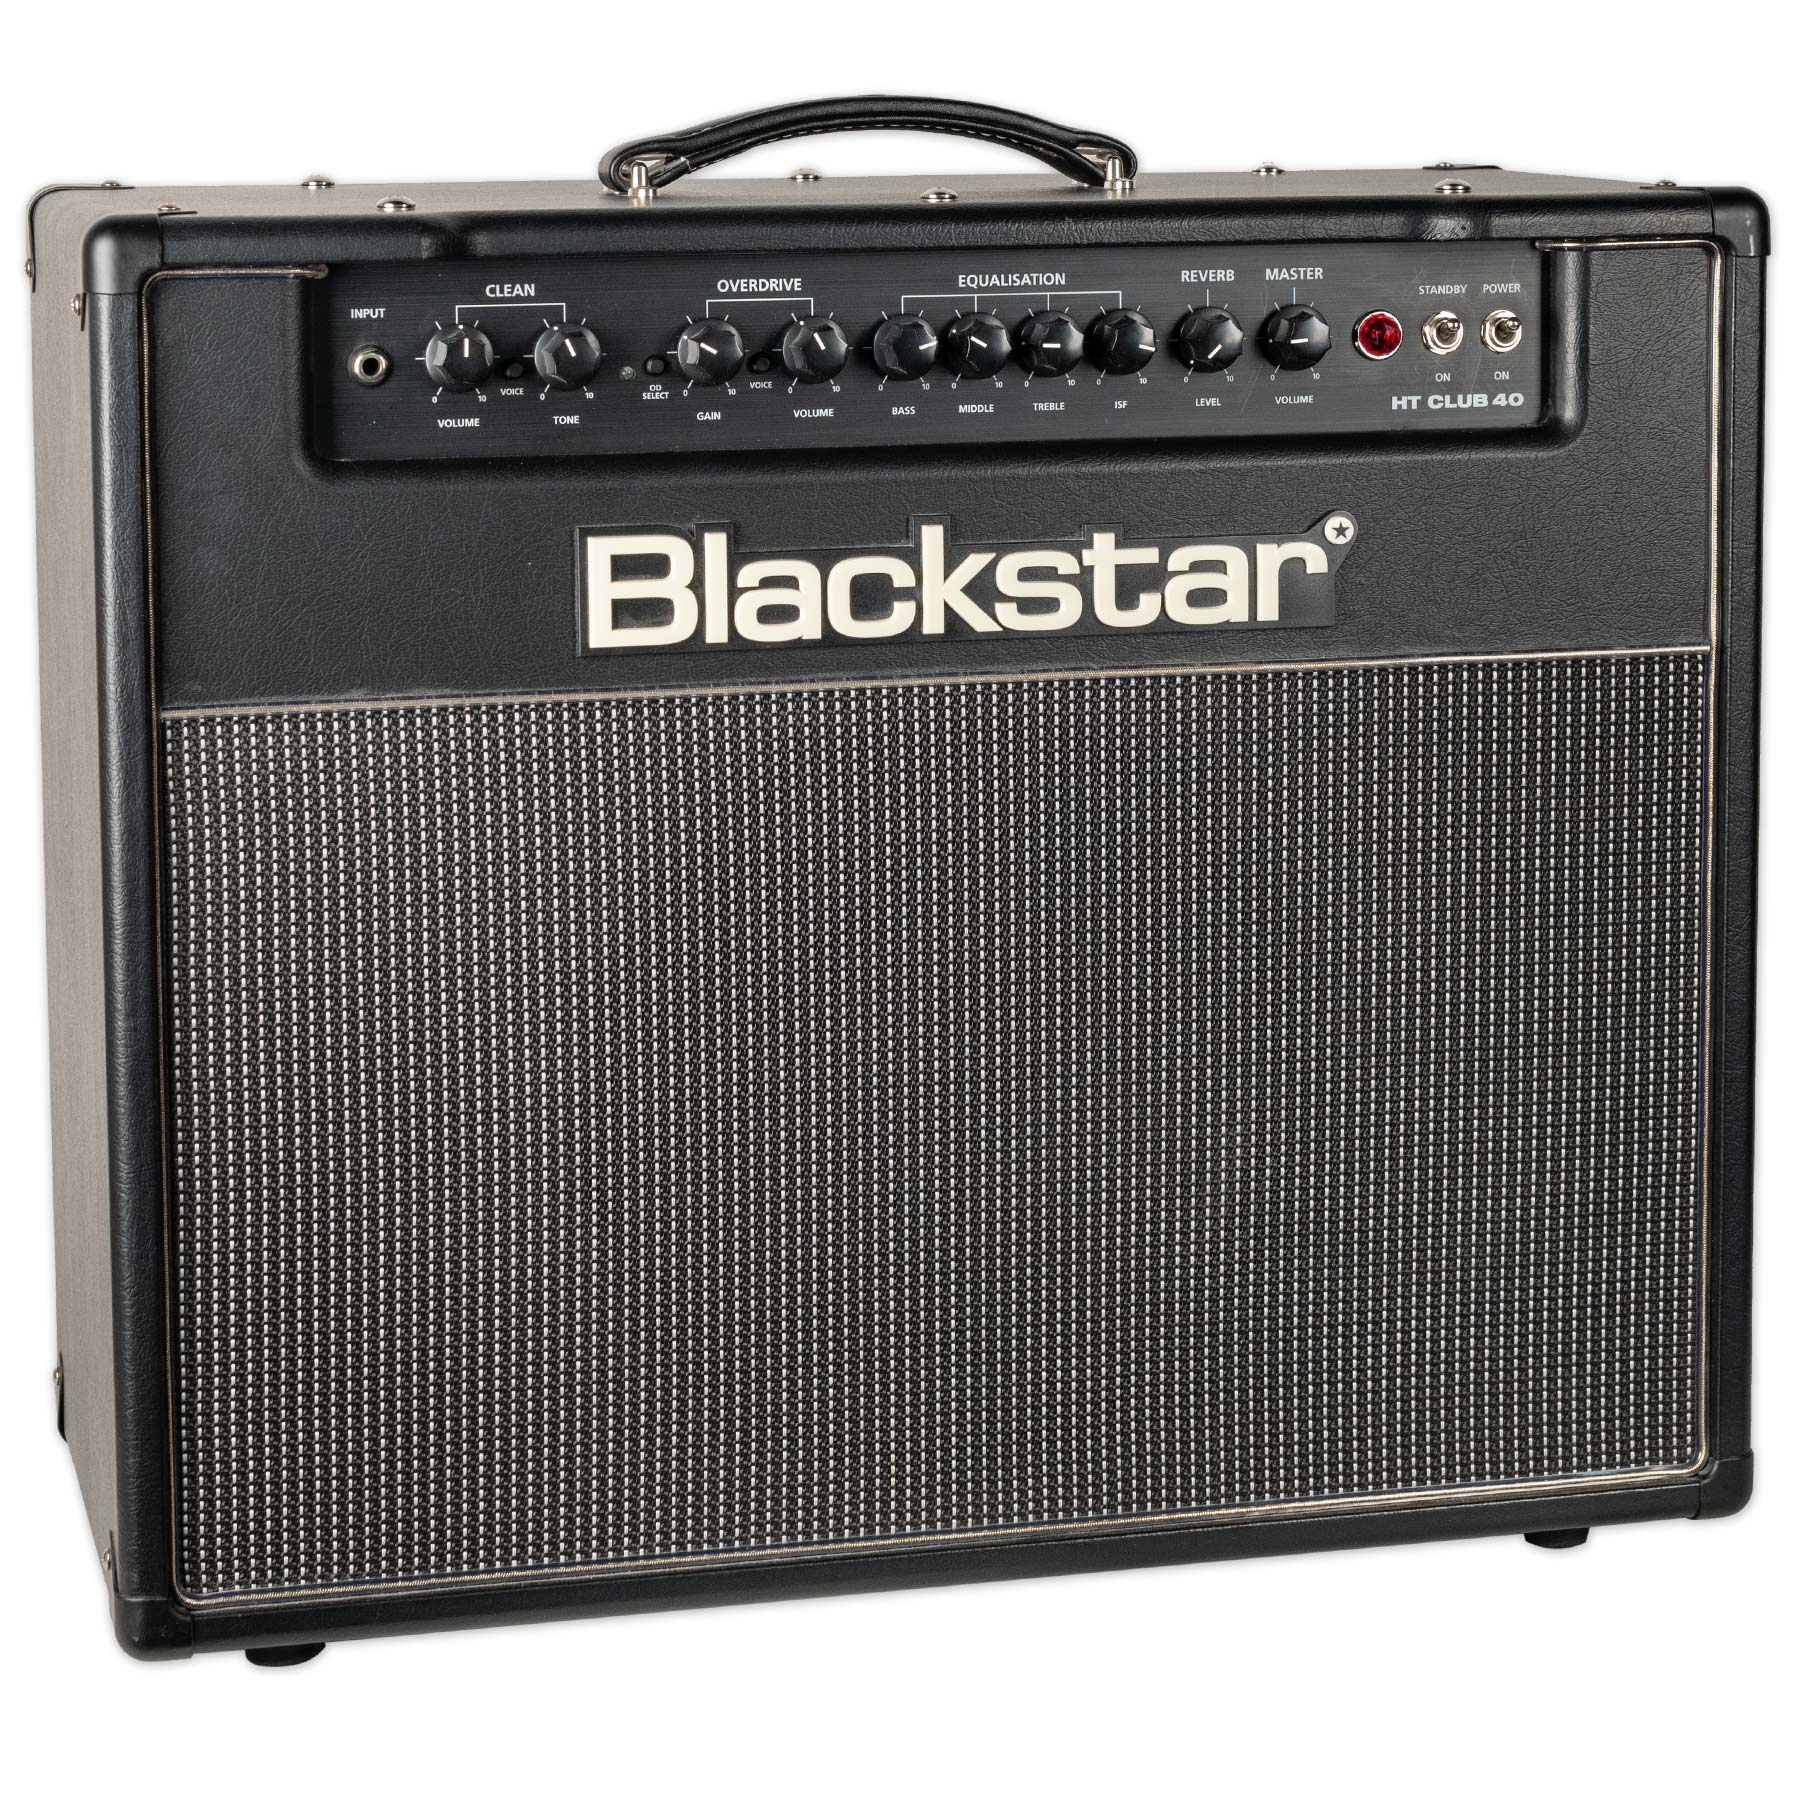 USED BLACKSTAR HT CLUB 40 1X12 COMBO